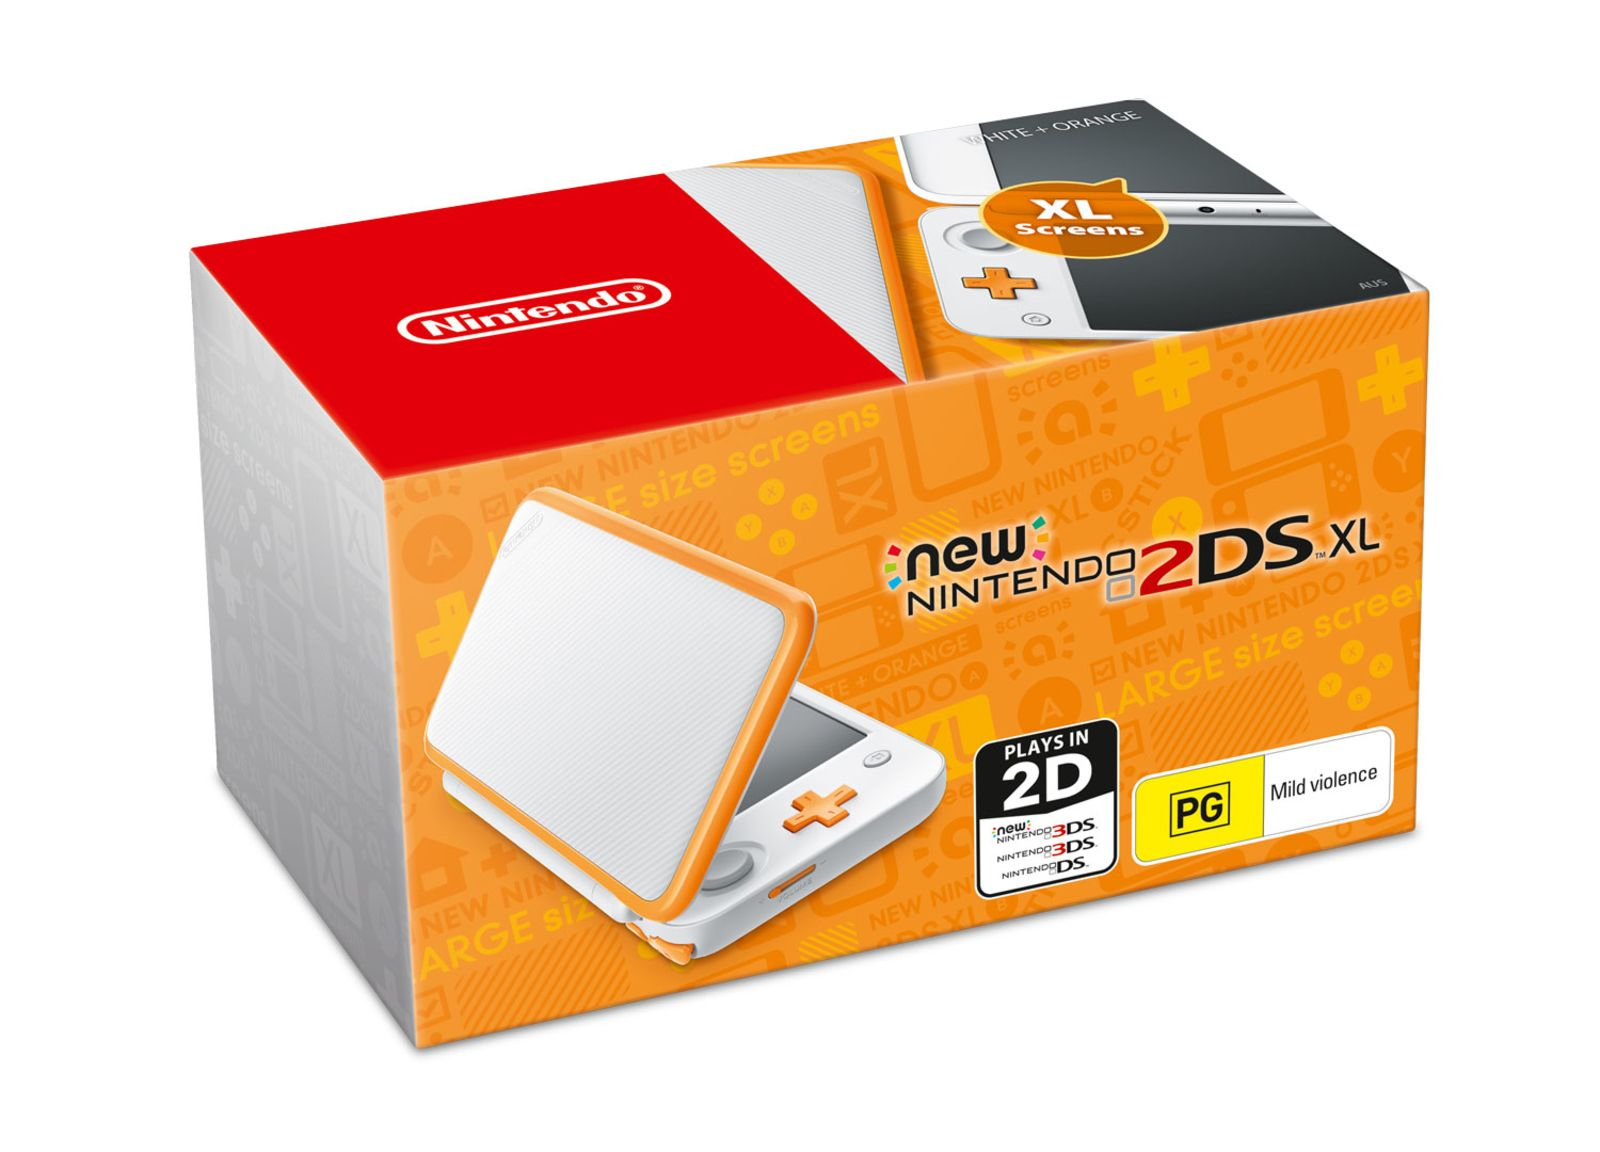 The Post Nintendo Announce The New 2ds Xl Console And New 3ds Selects Games  Appeared First On Rocket Chainsaw